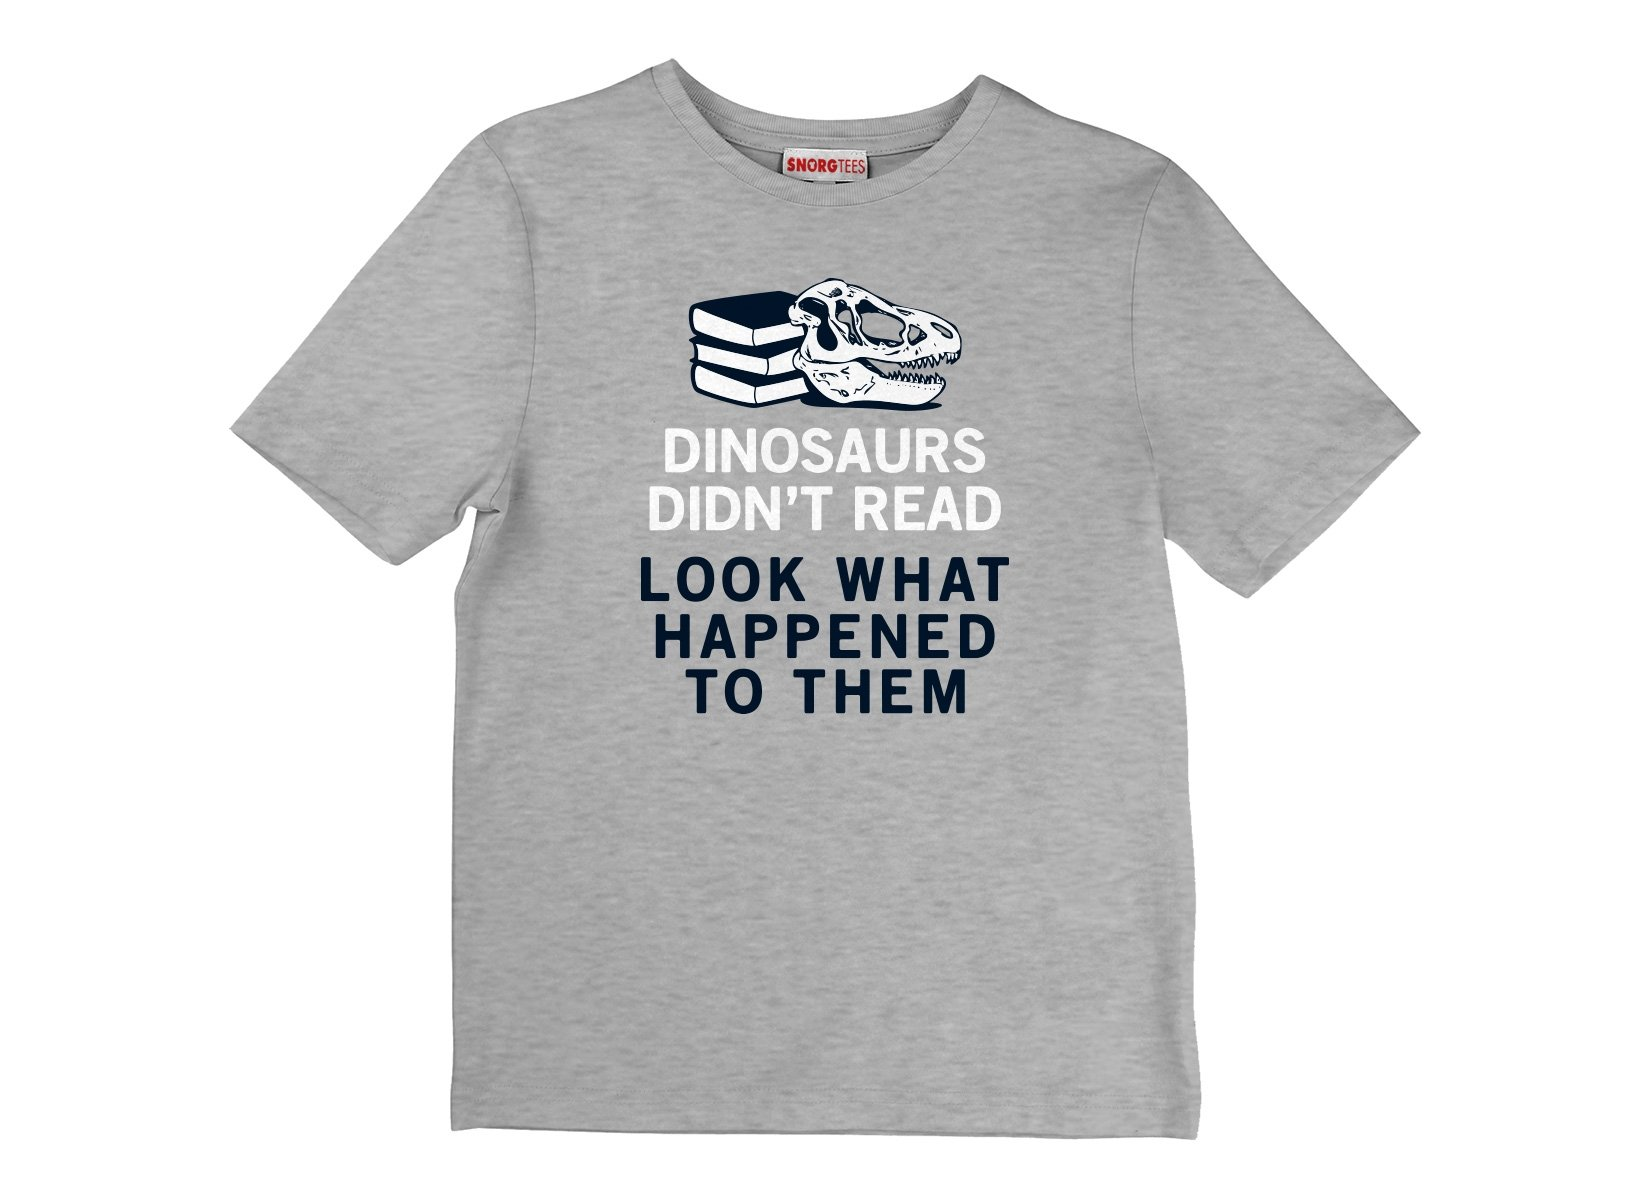 Dinosaurs Didn't Read on Kids T-Shirt